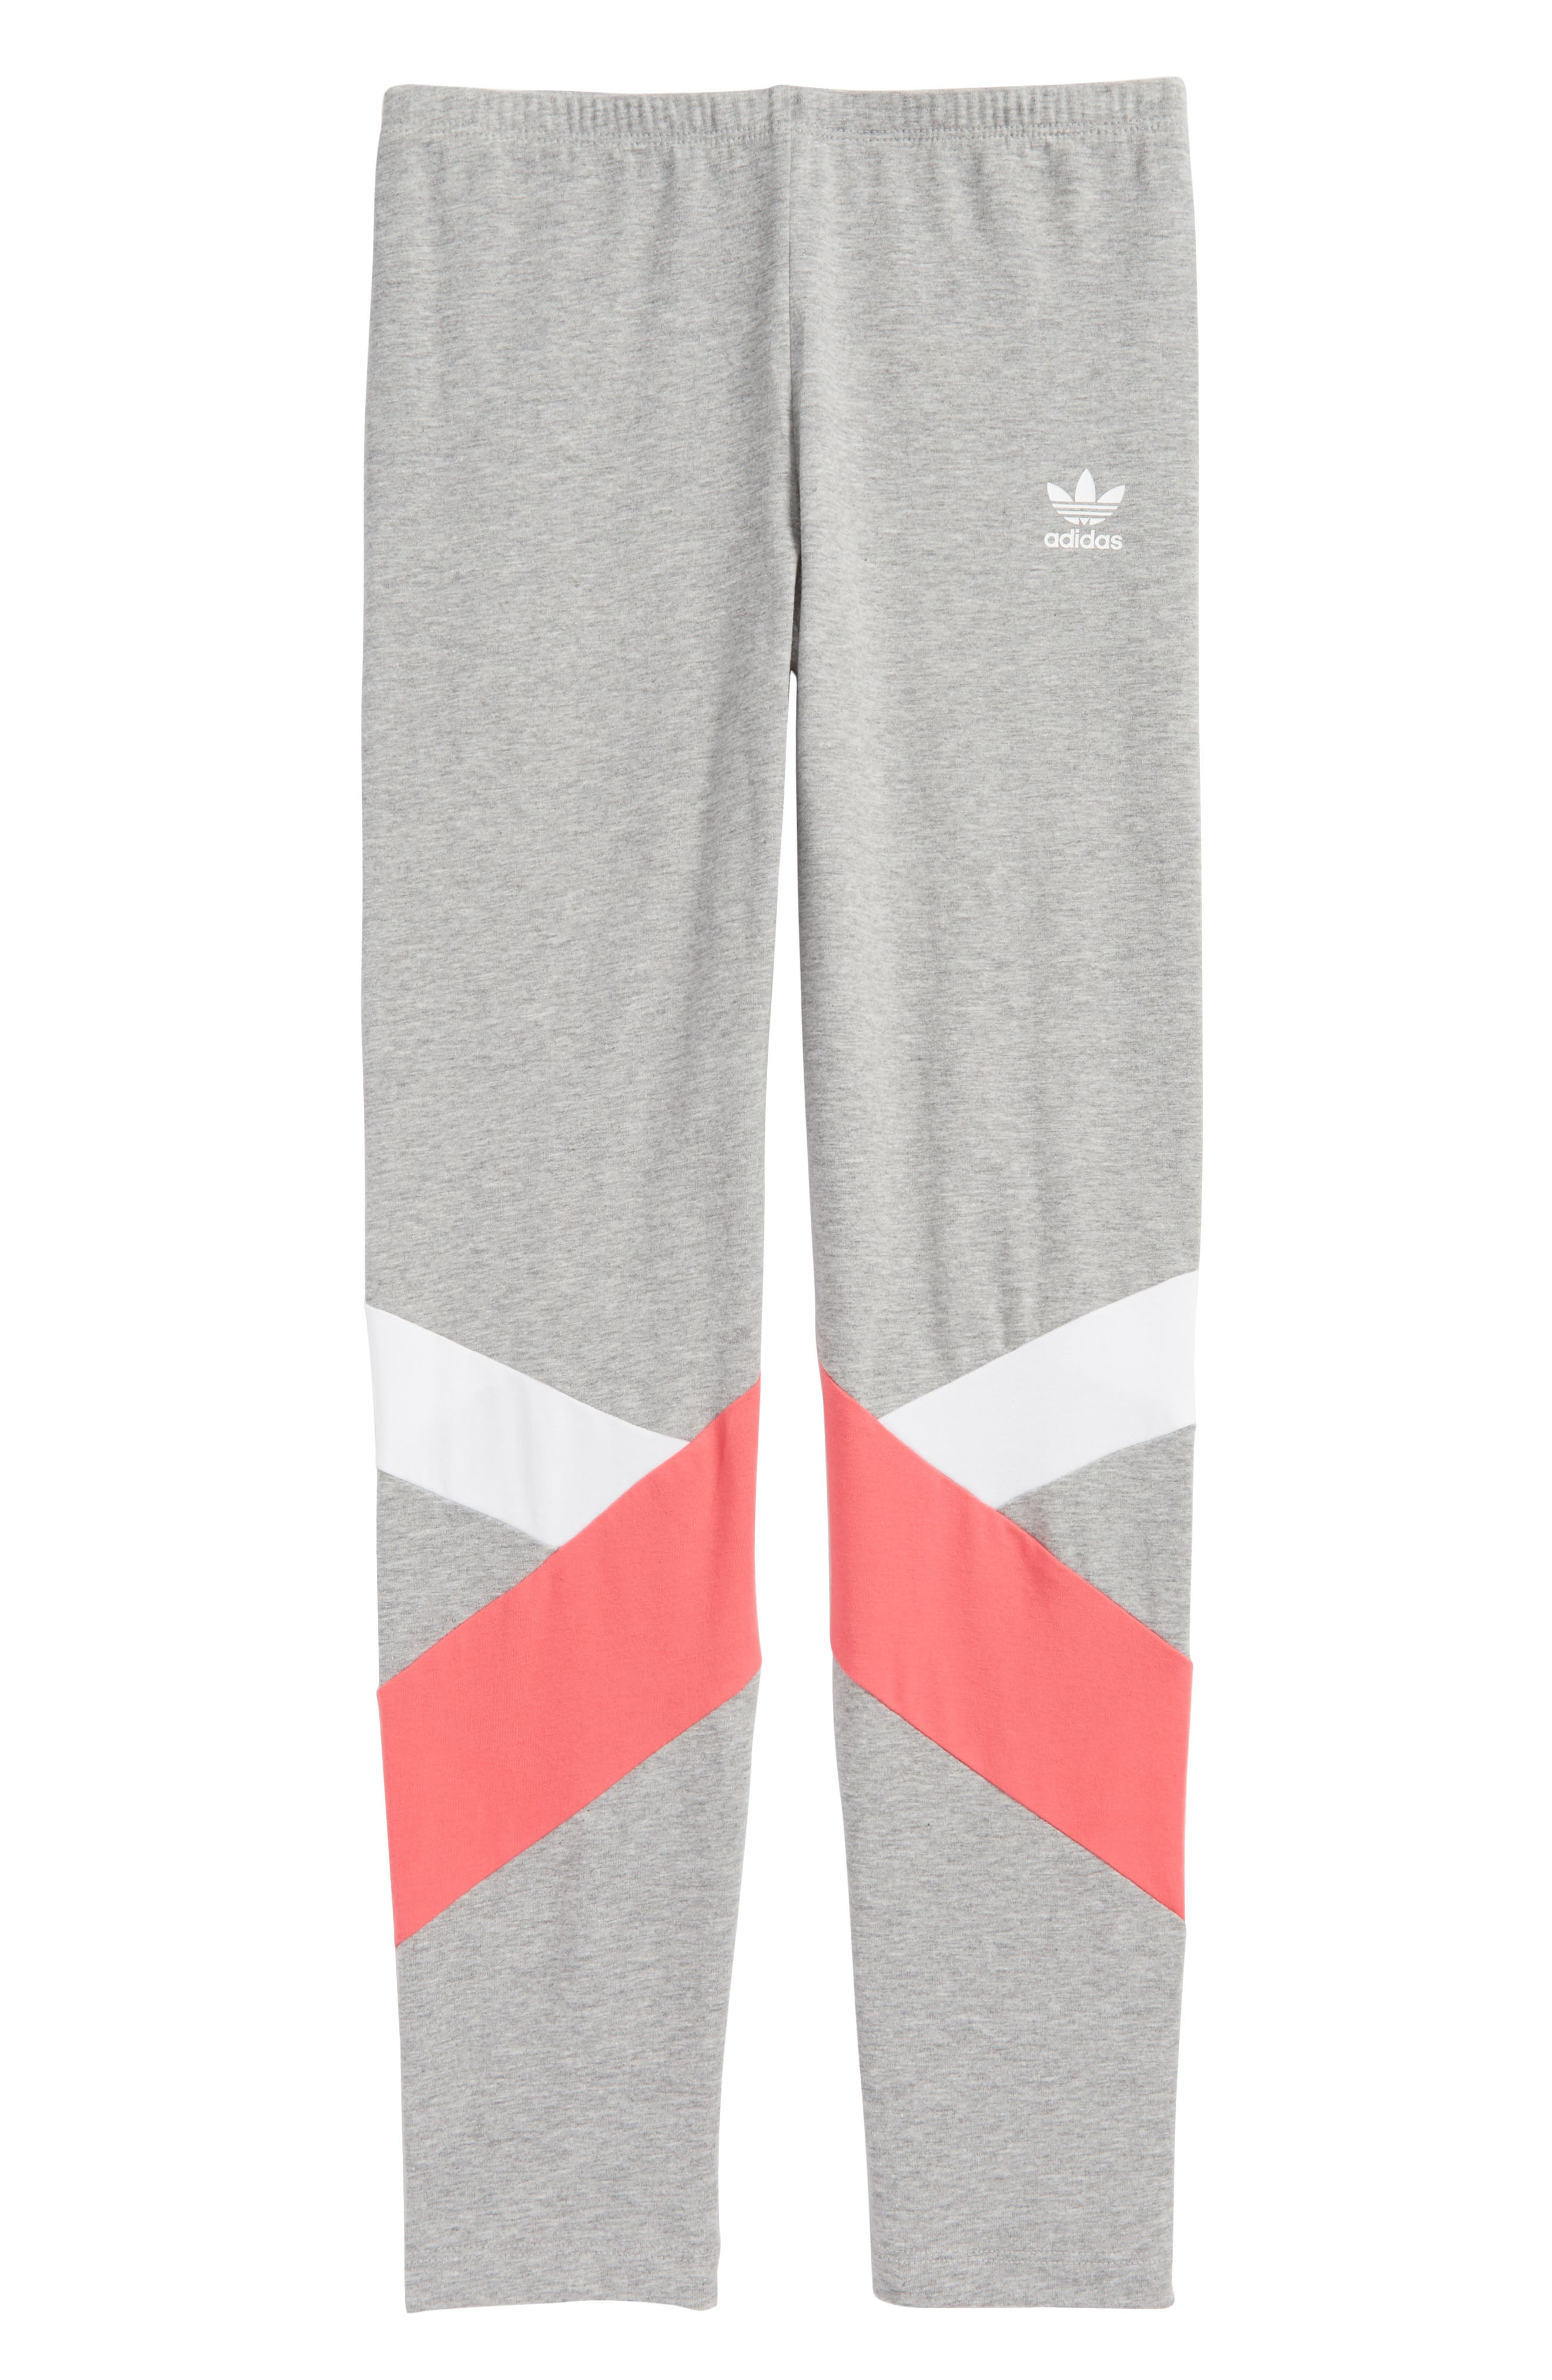 Main Image - adidas J Leggings (Big Girls)